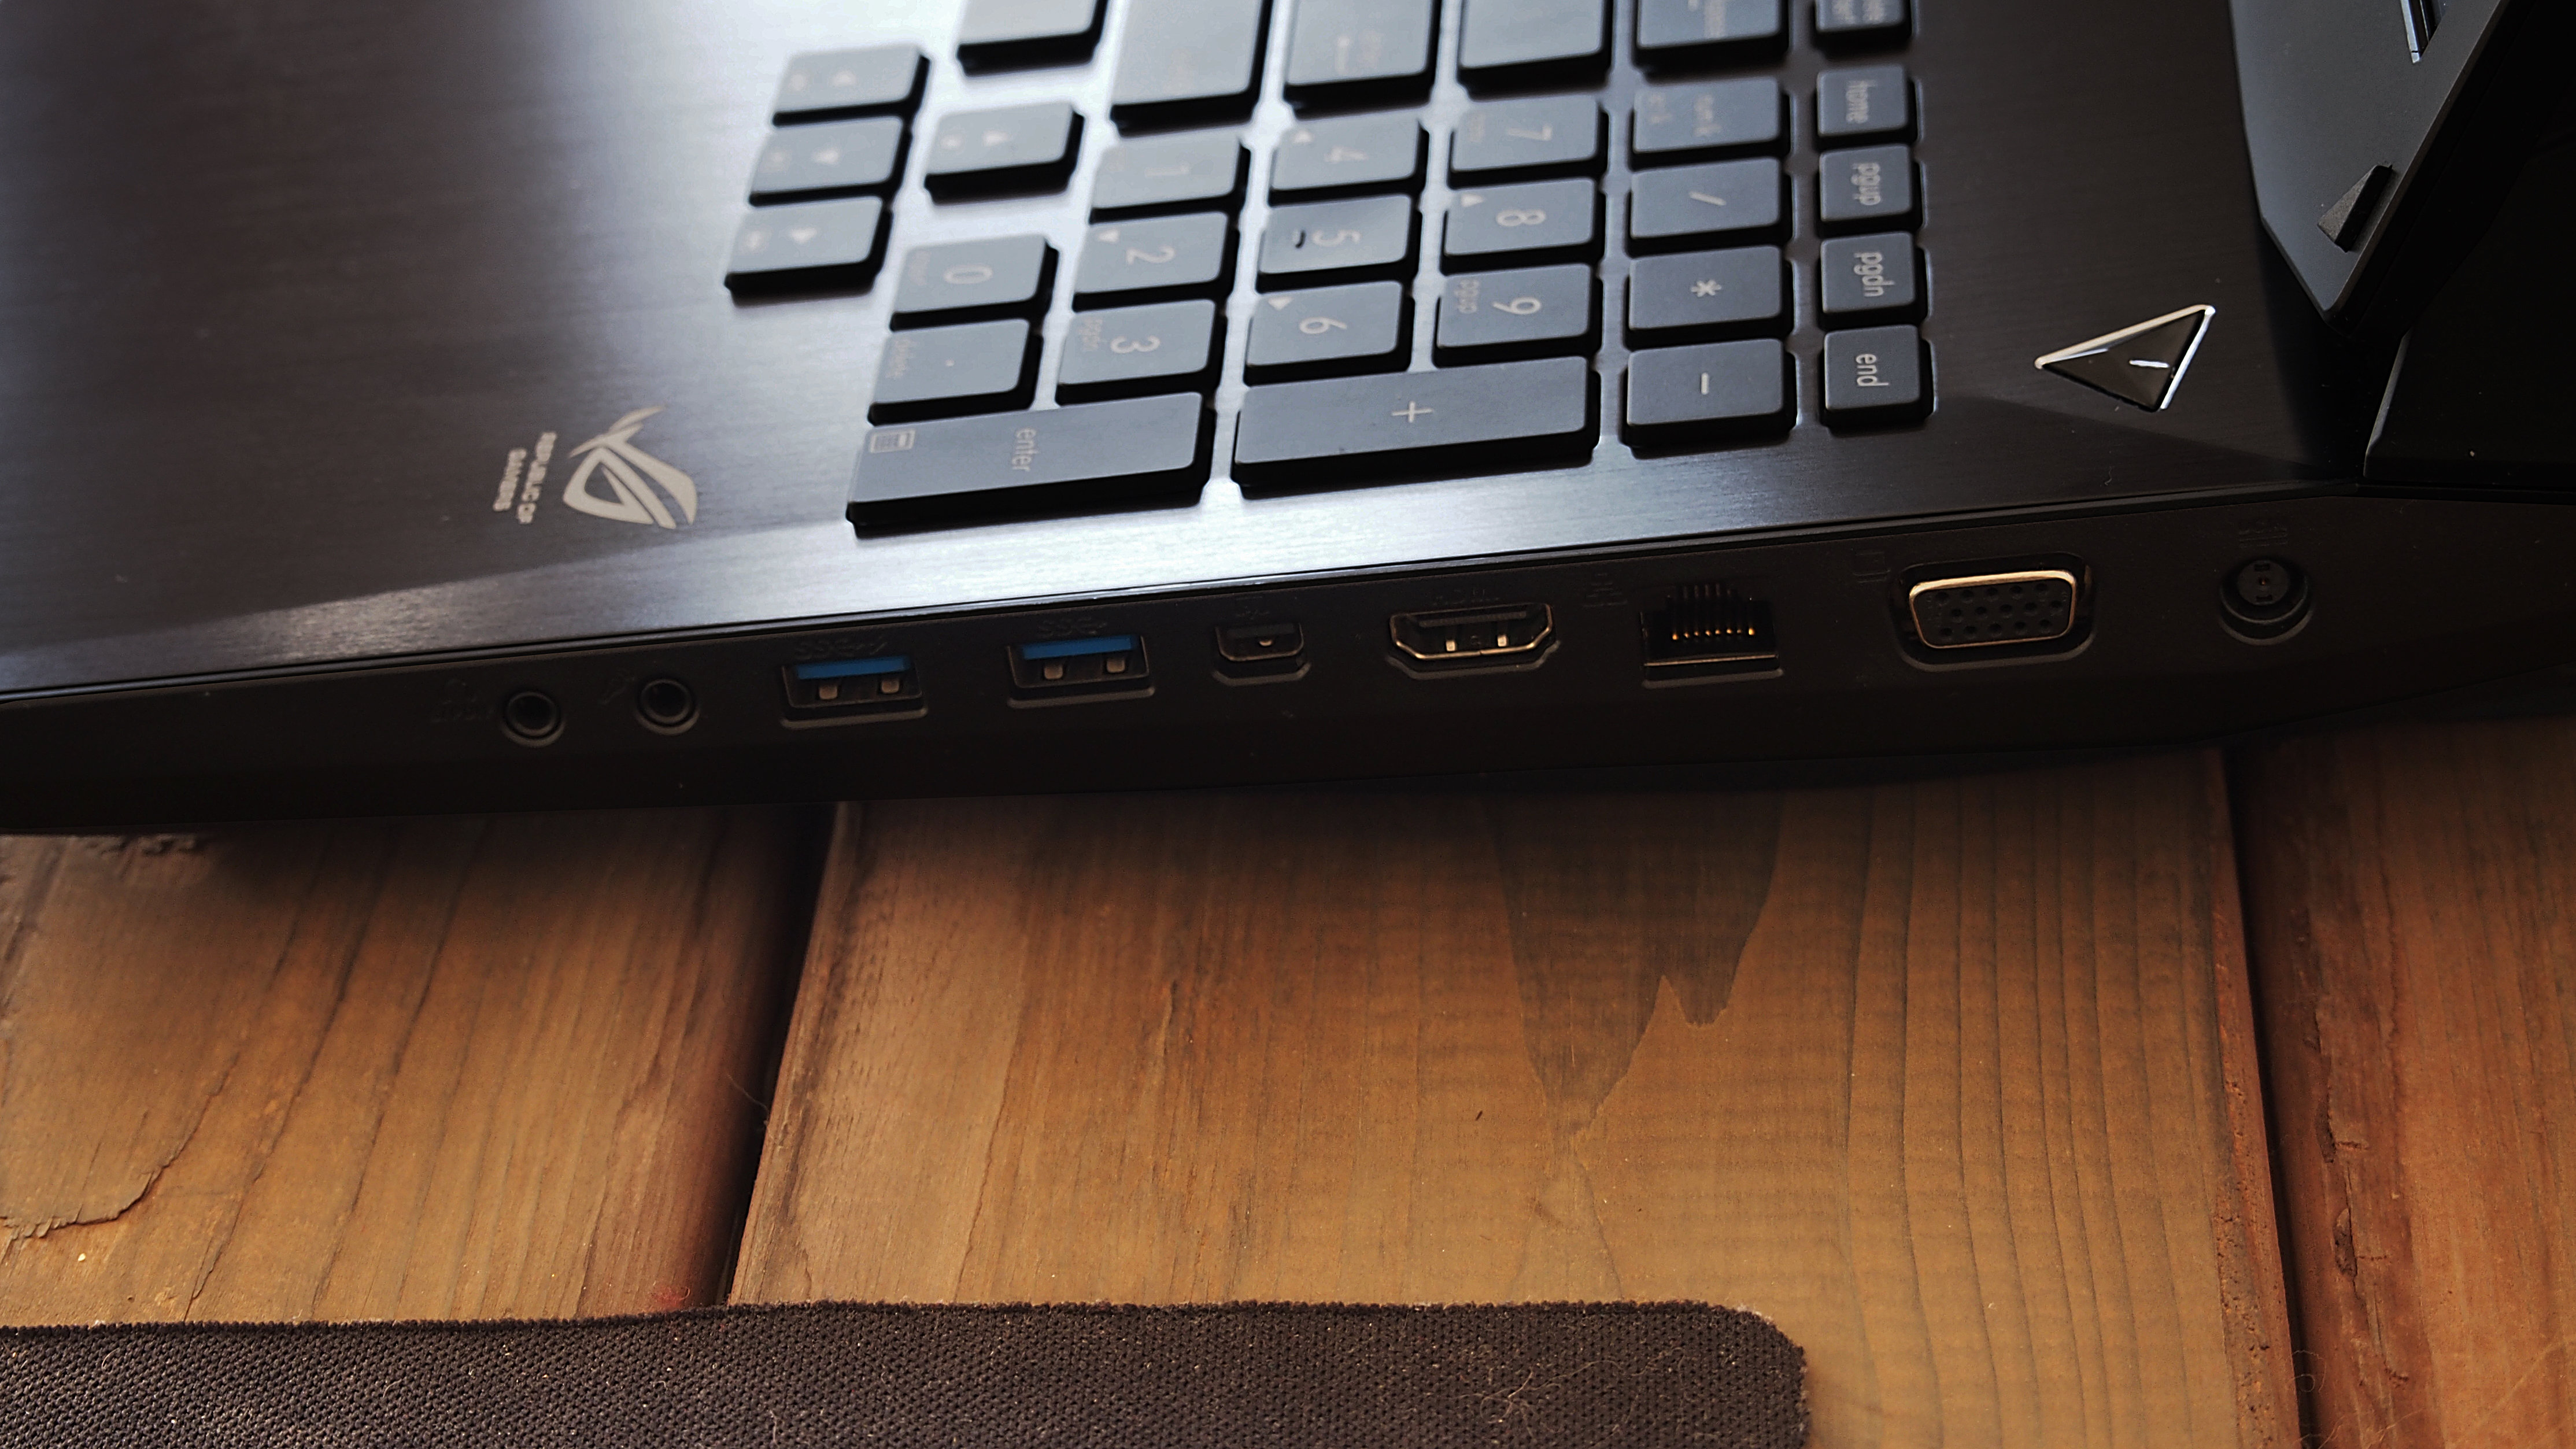 On its right side, the Asus G750JZ contains two USB 3.0 ports, a headphone jack, a microphone input, a DisplayPort, an HDMI output, and ethernet jack, and a VGA output.